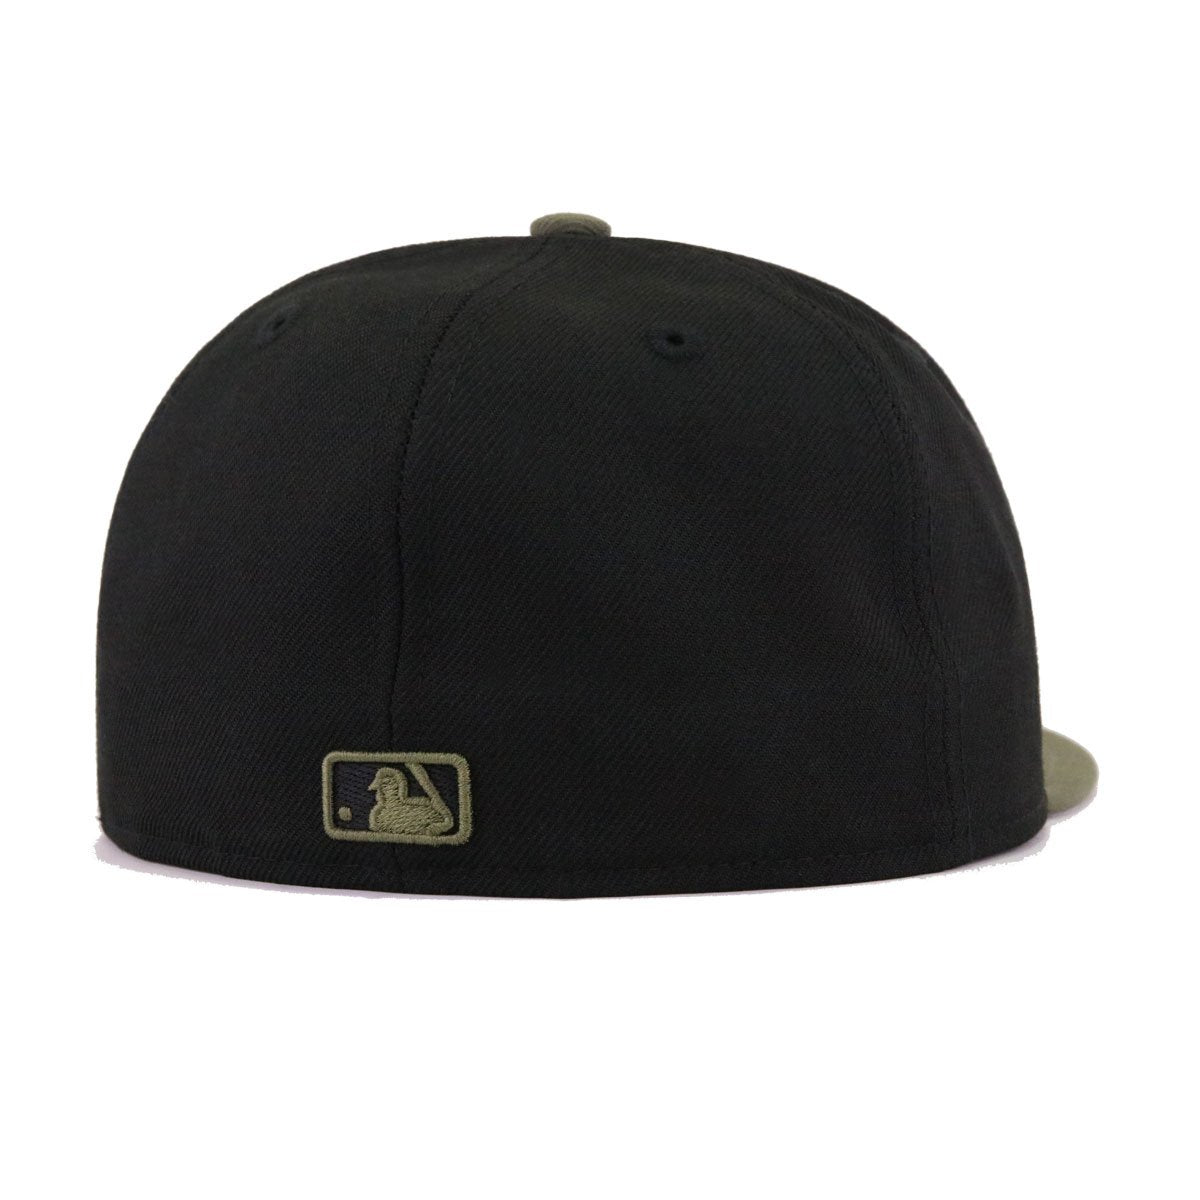 New York Yankees Black New Olive New Era 59Fifty Fitted